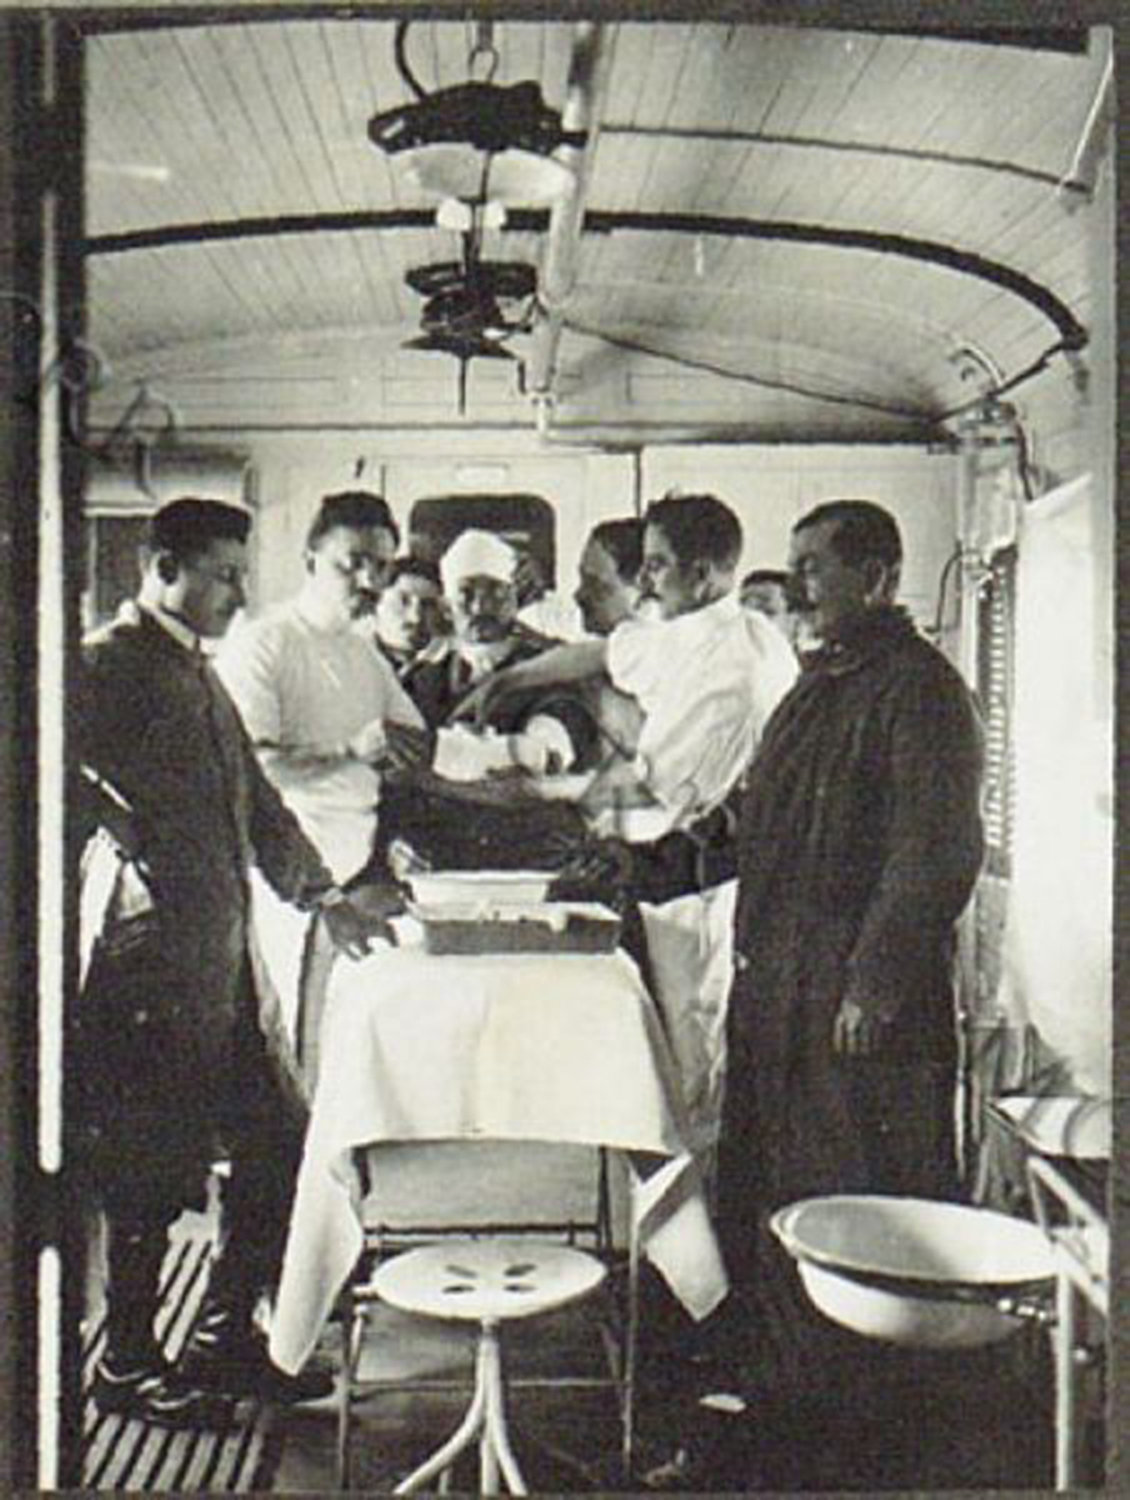 Treatment room in a train, 1916 Italien, Museo Centrale del Risorgimento, In Copyright